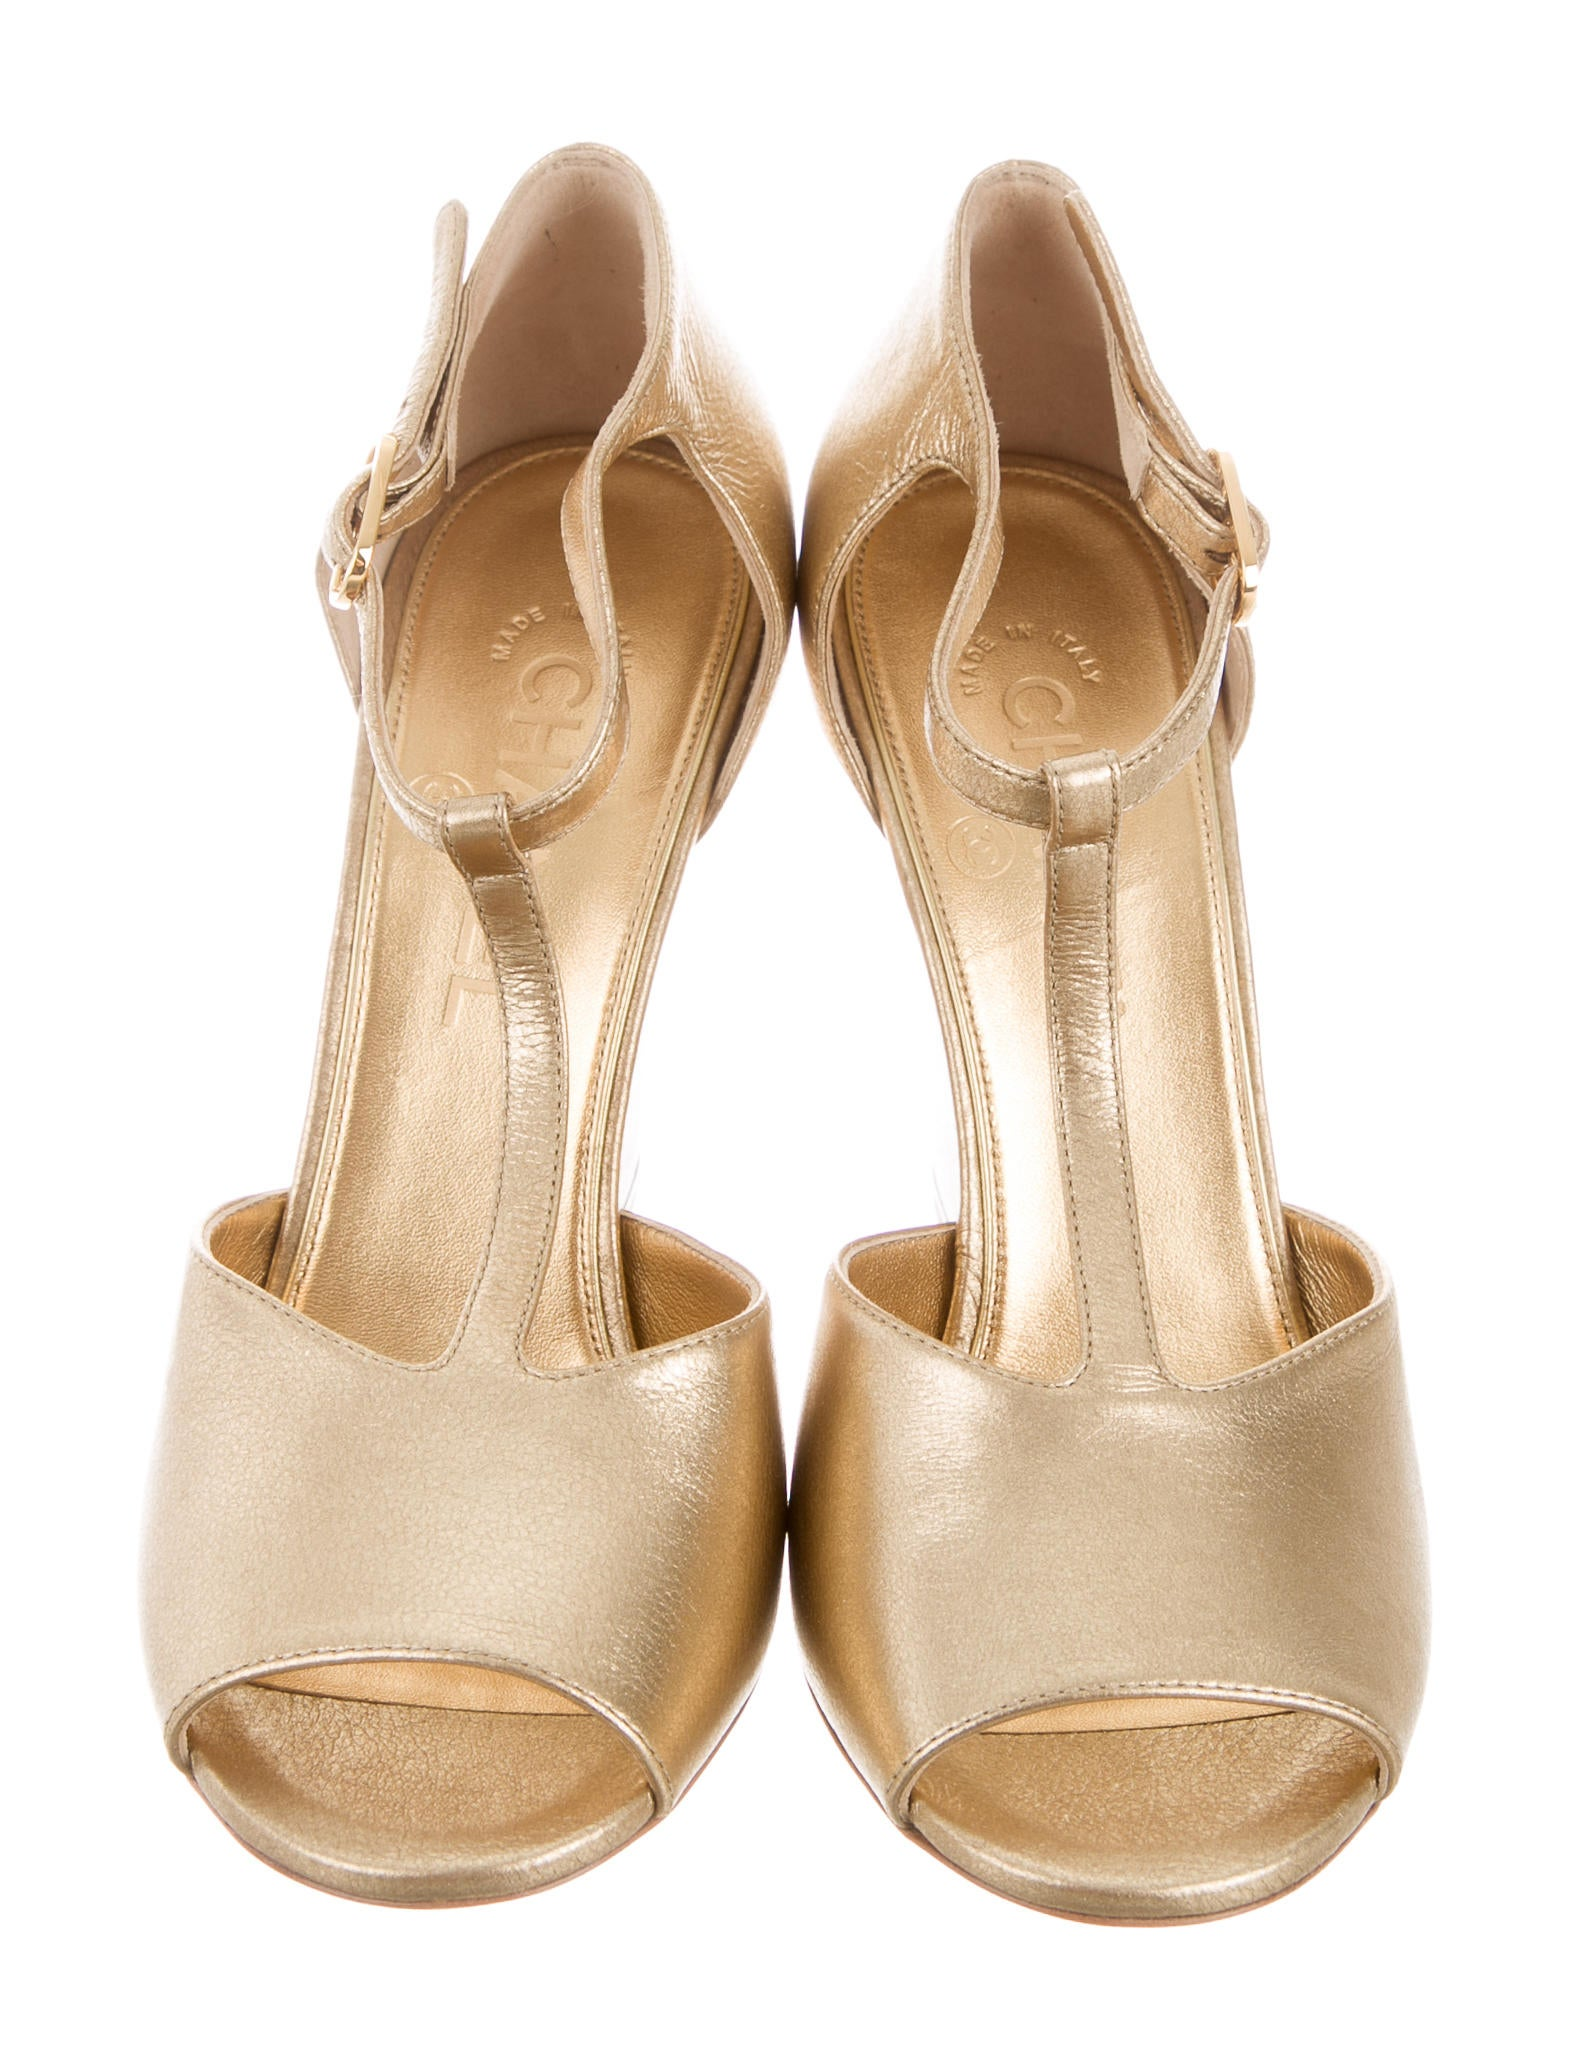 chanel 2015 faux pearl wedge sandals shoes cha194128